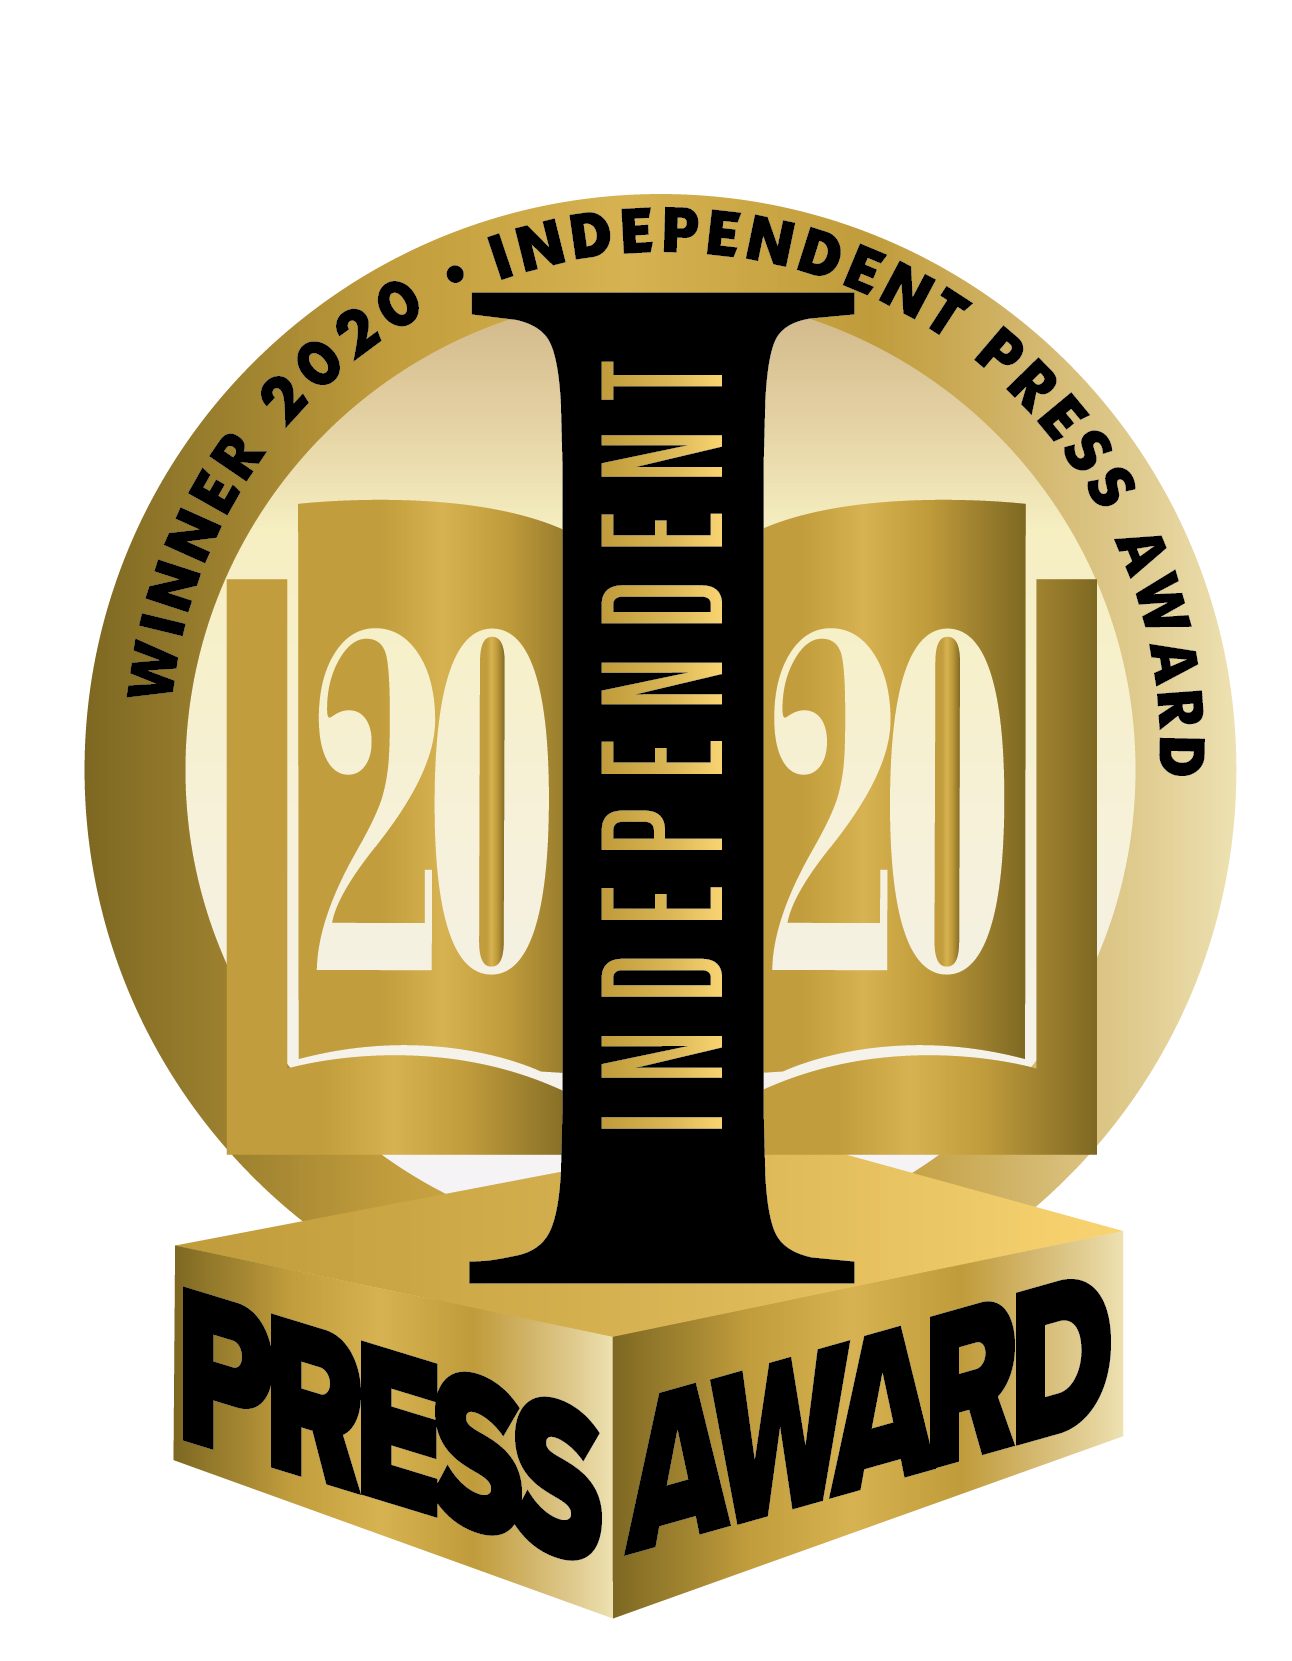 2020 Press Award-Winner Independent Press